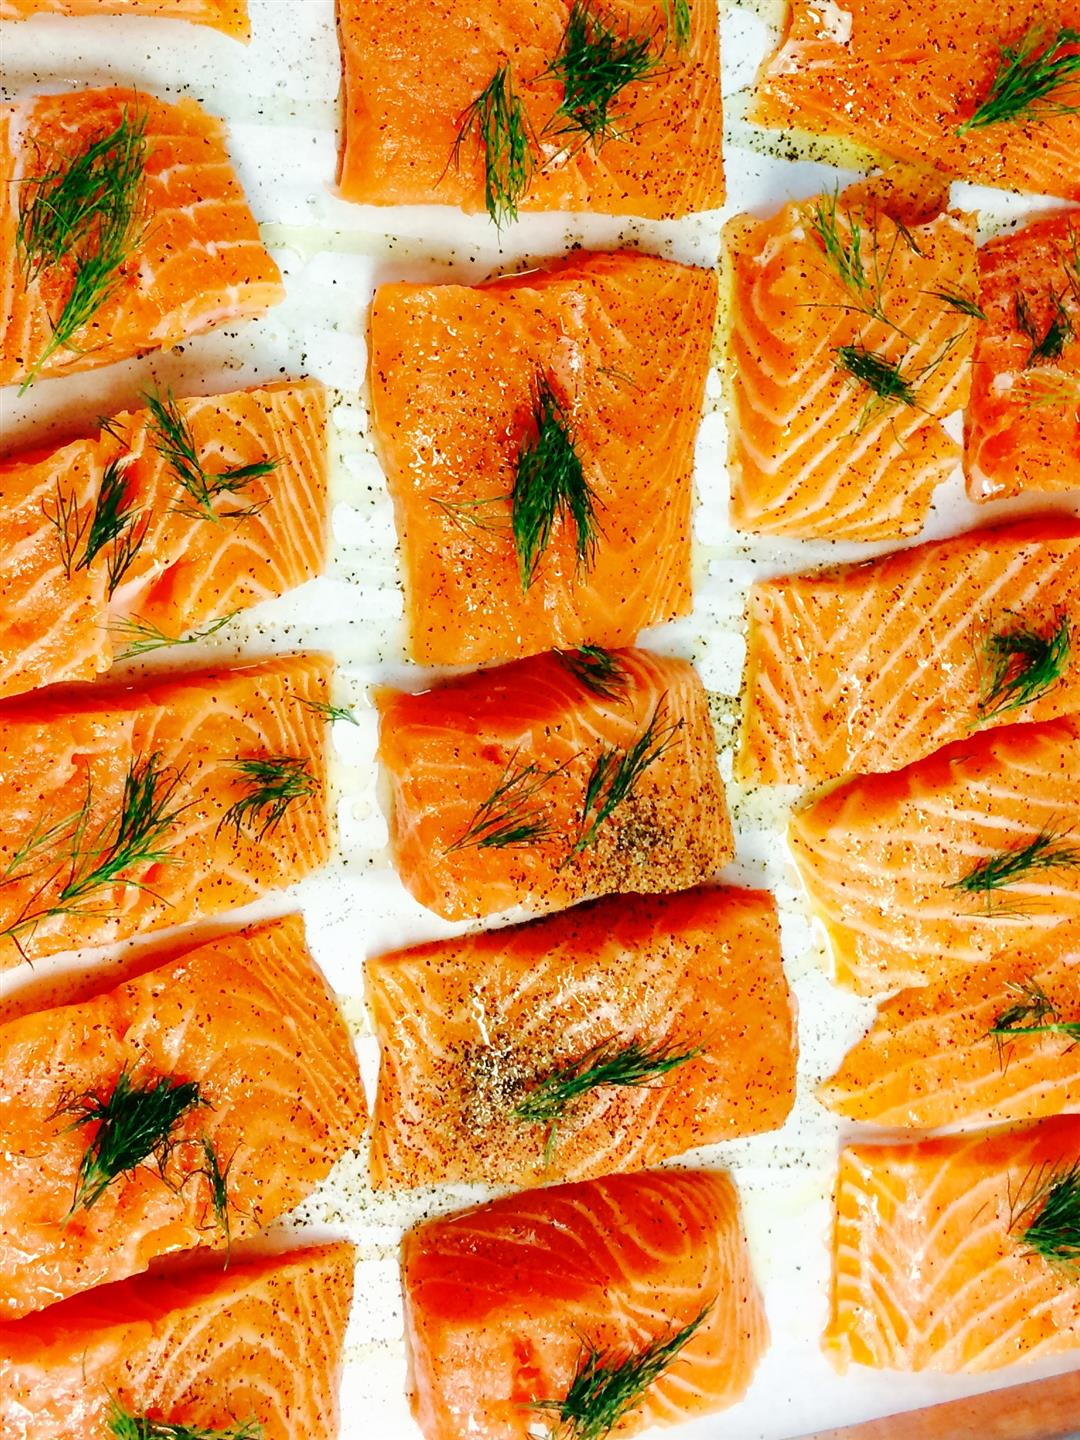 catering display of baked salmon topped with dill